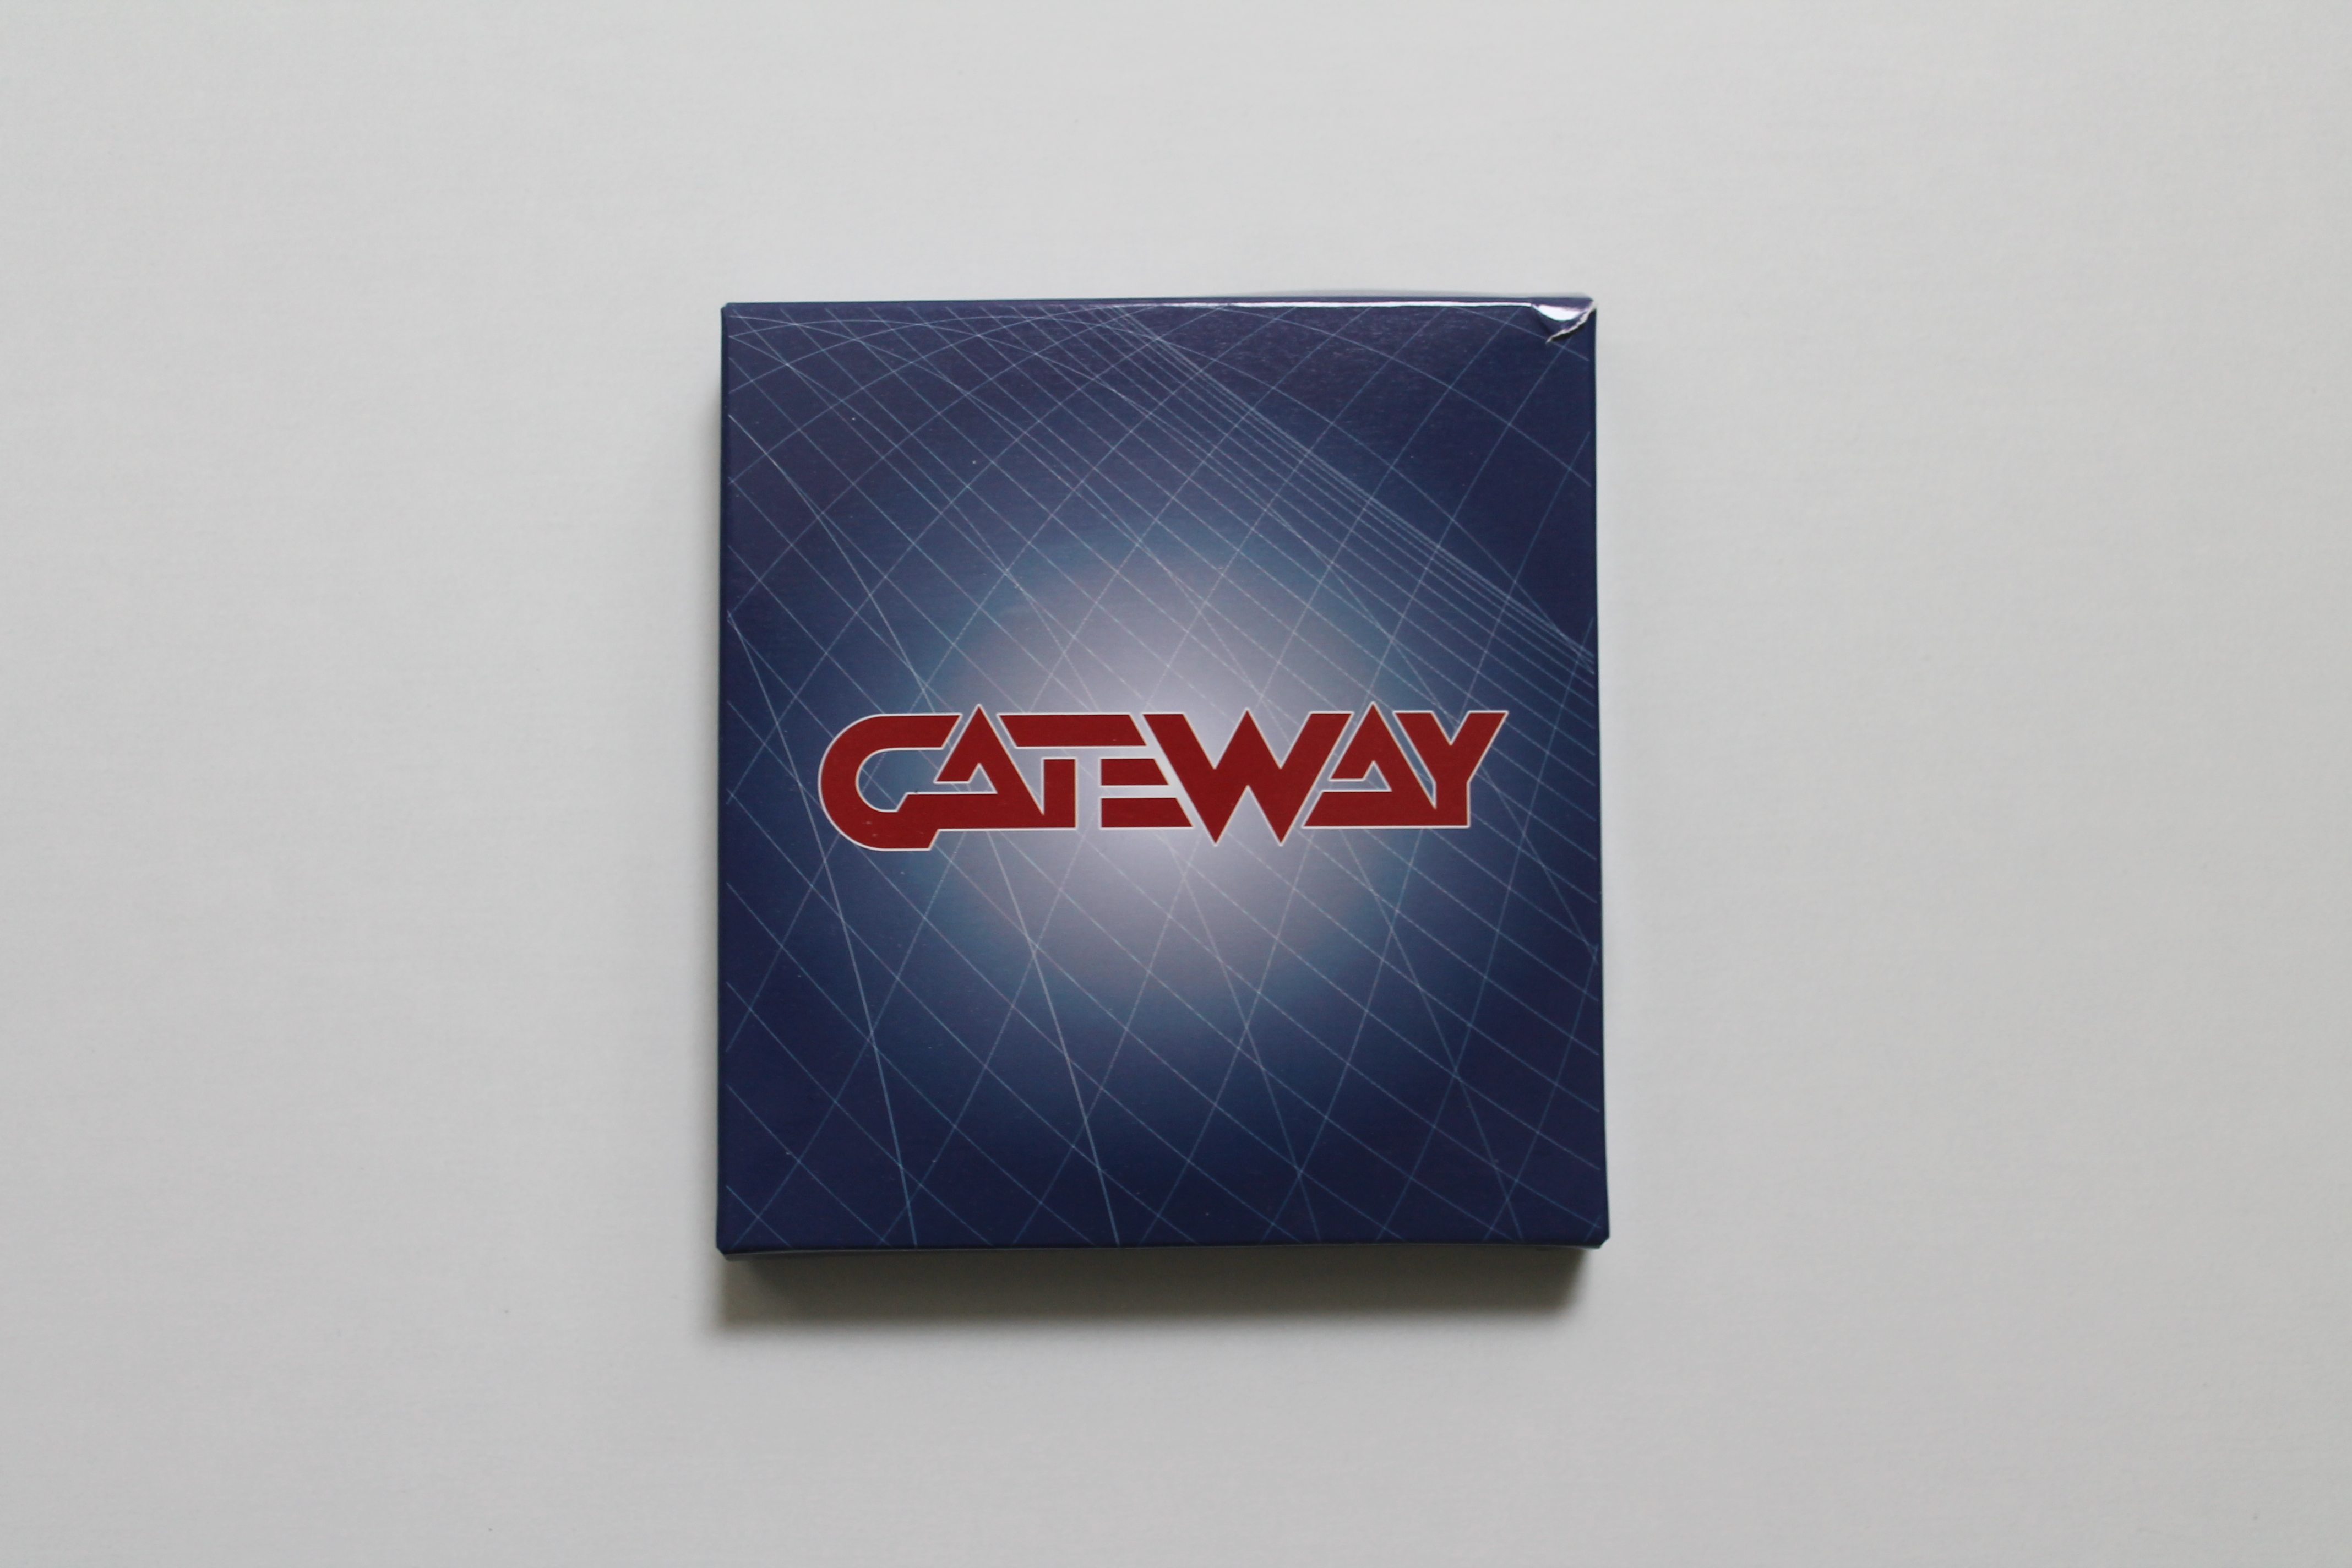 Gateway 3DS Review